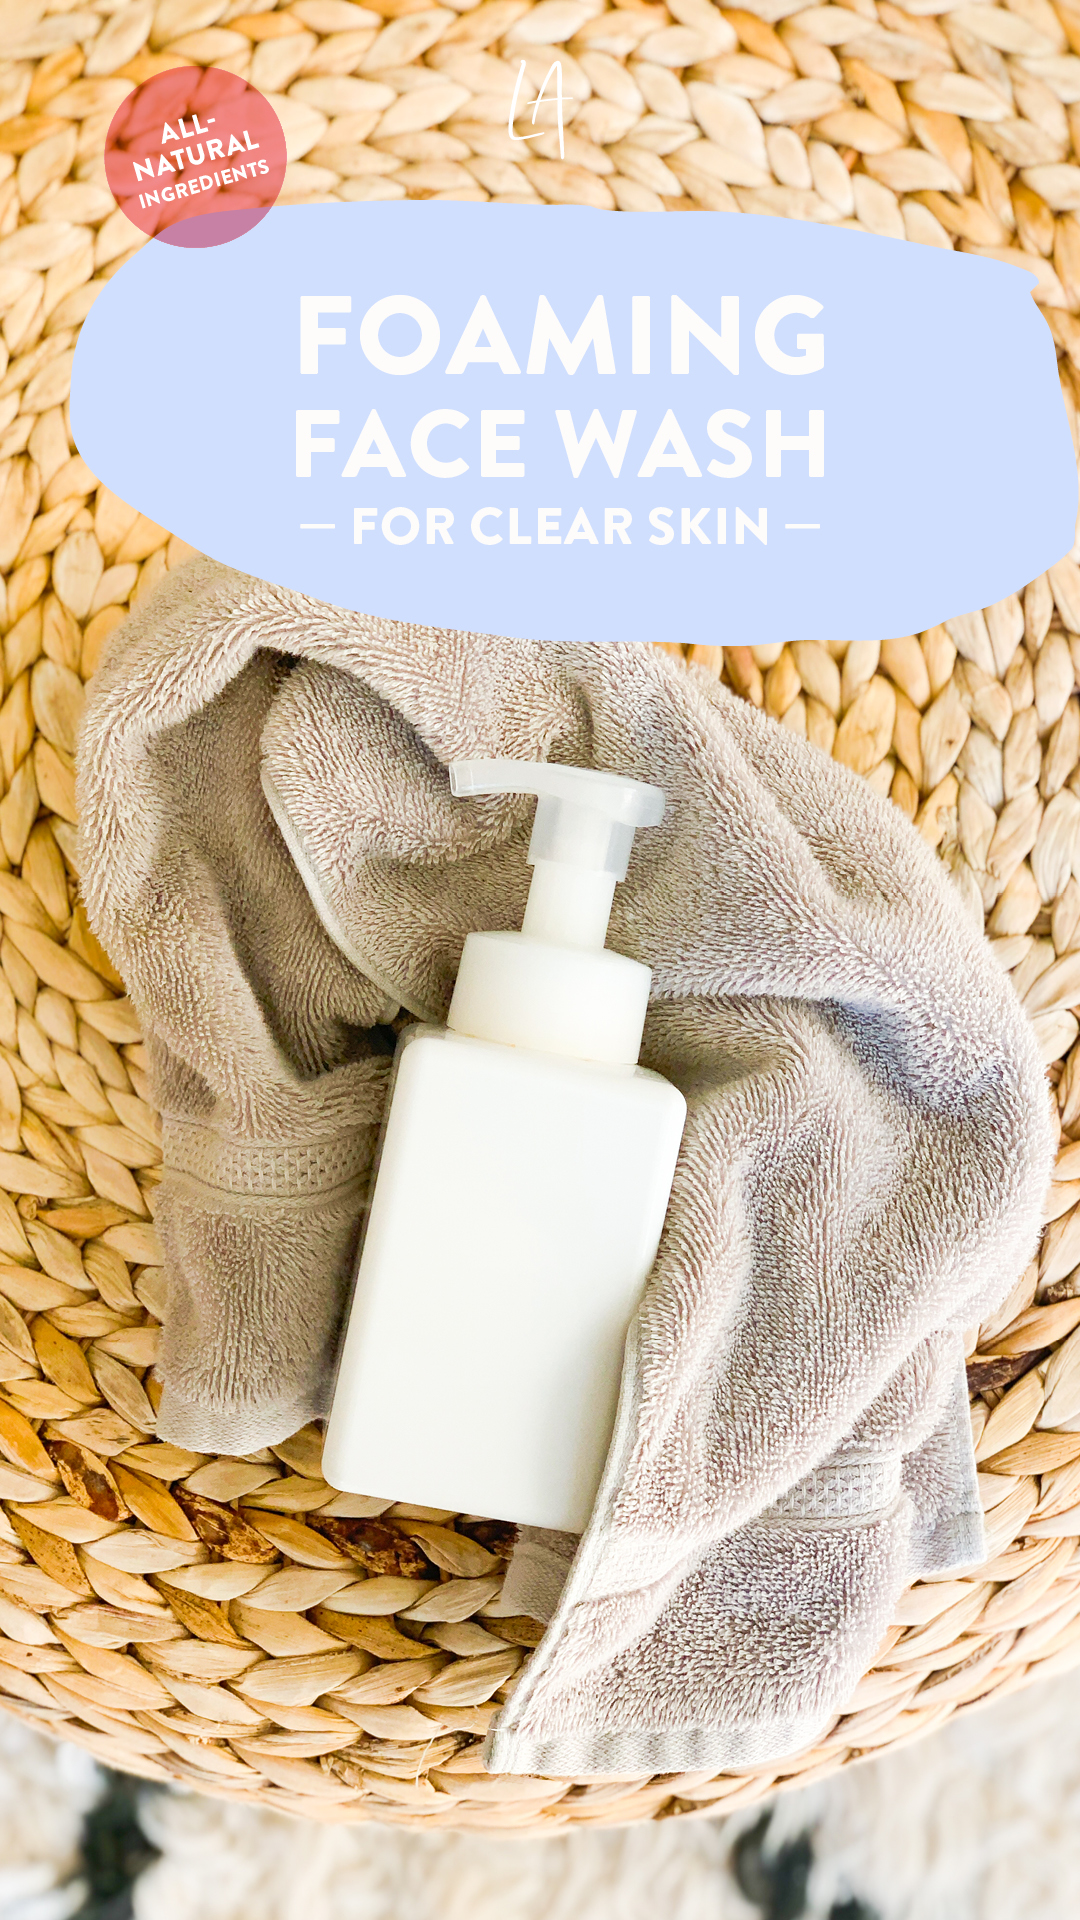 Foaming face wash for clear skin